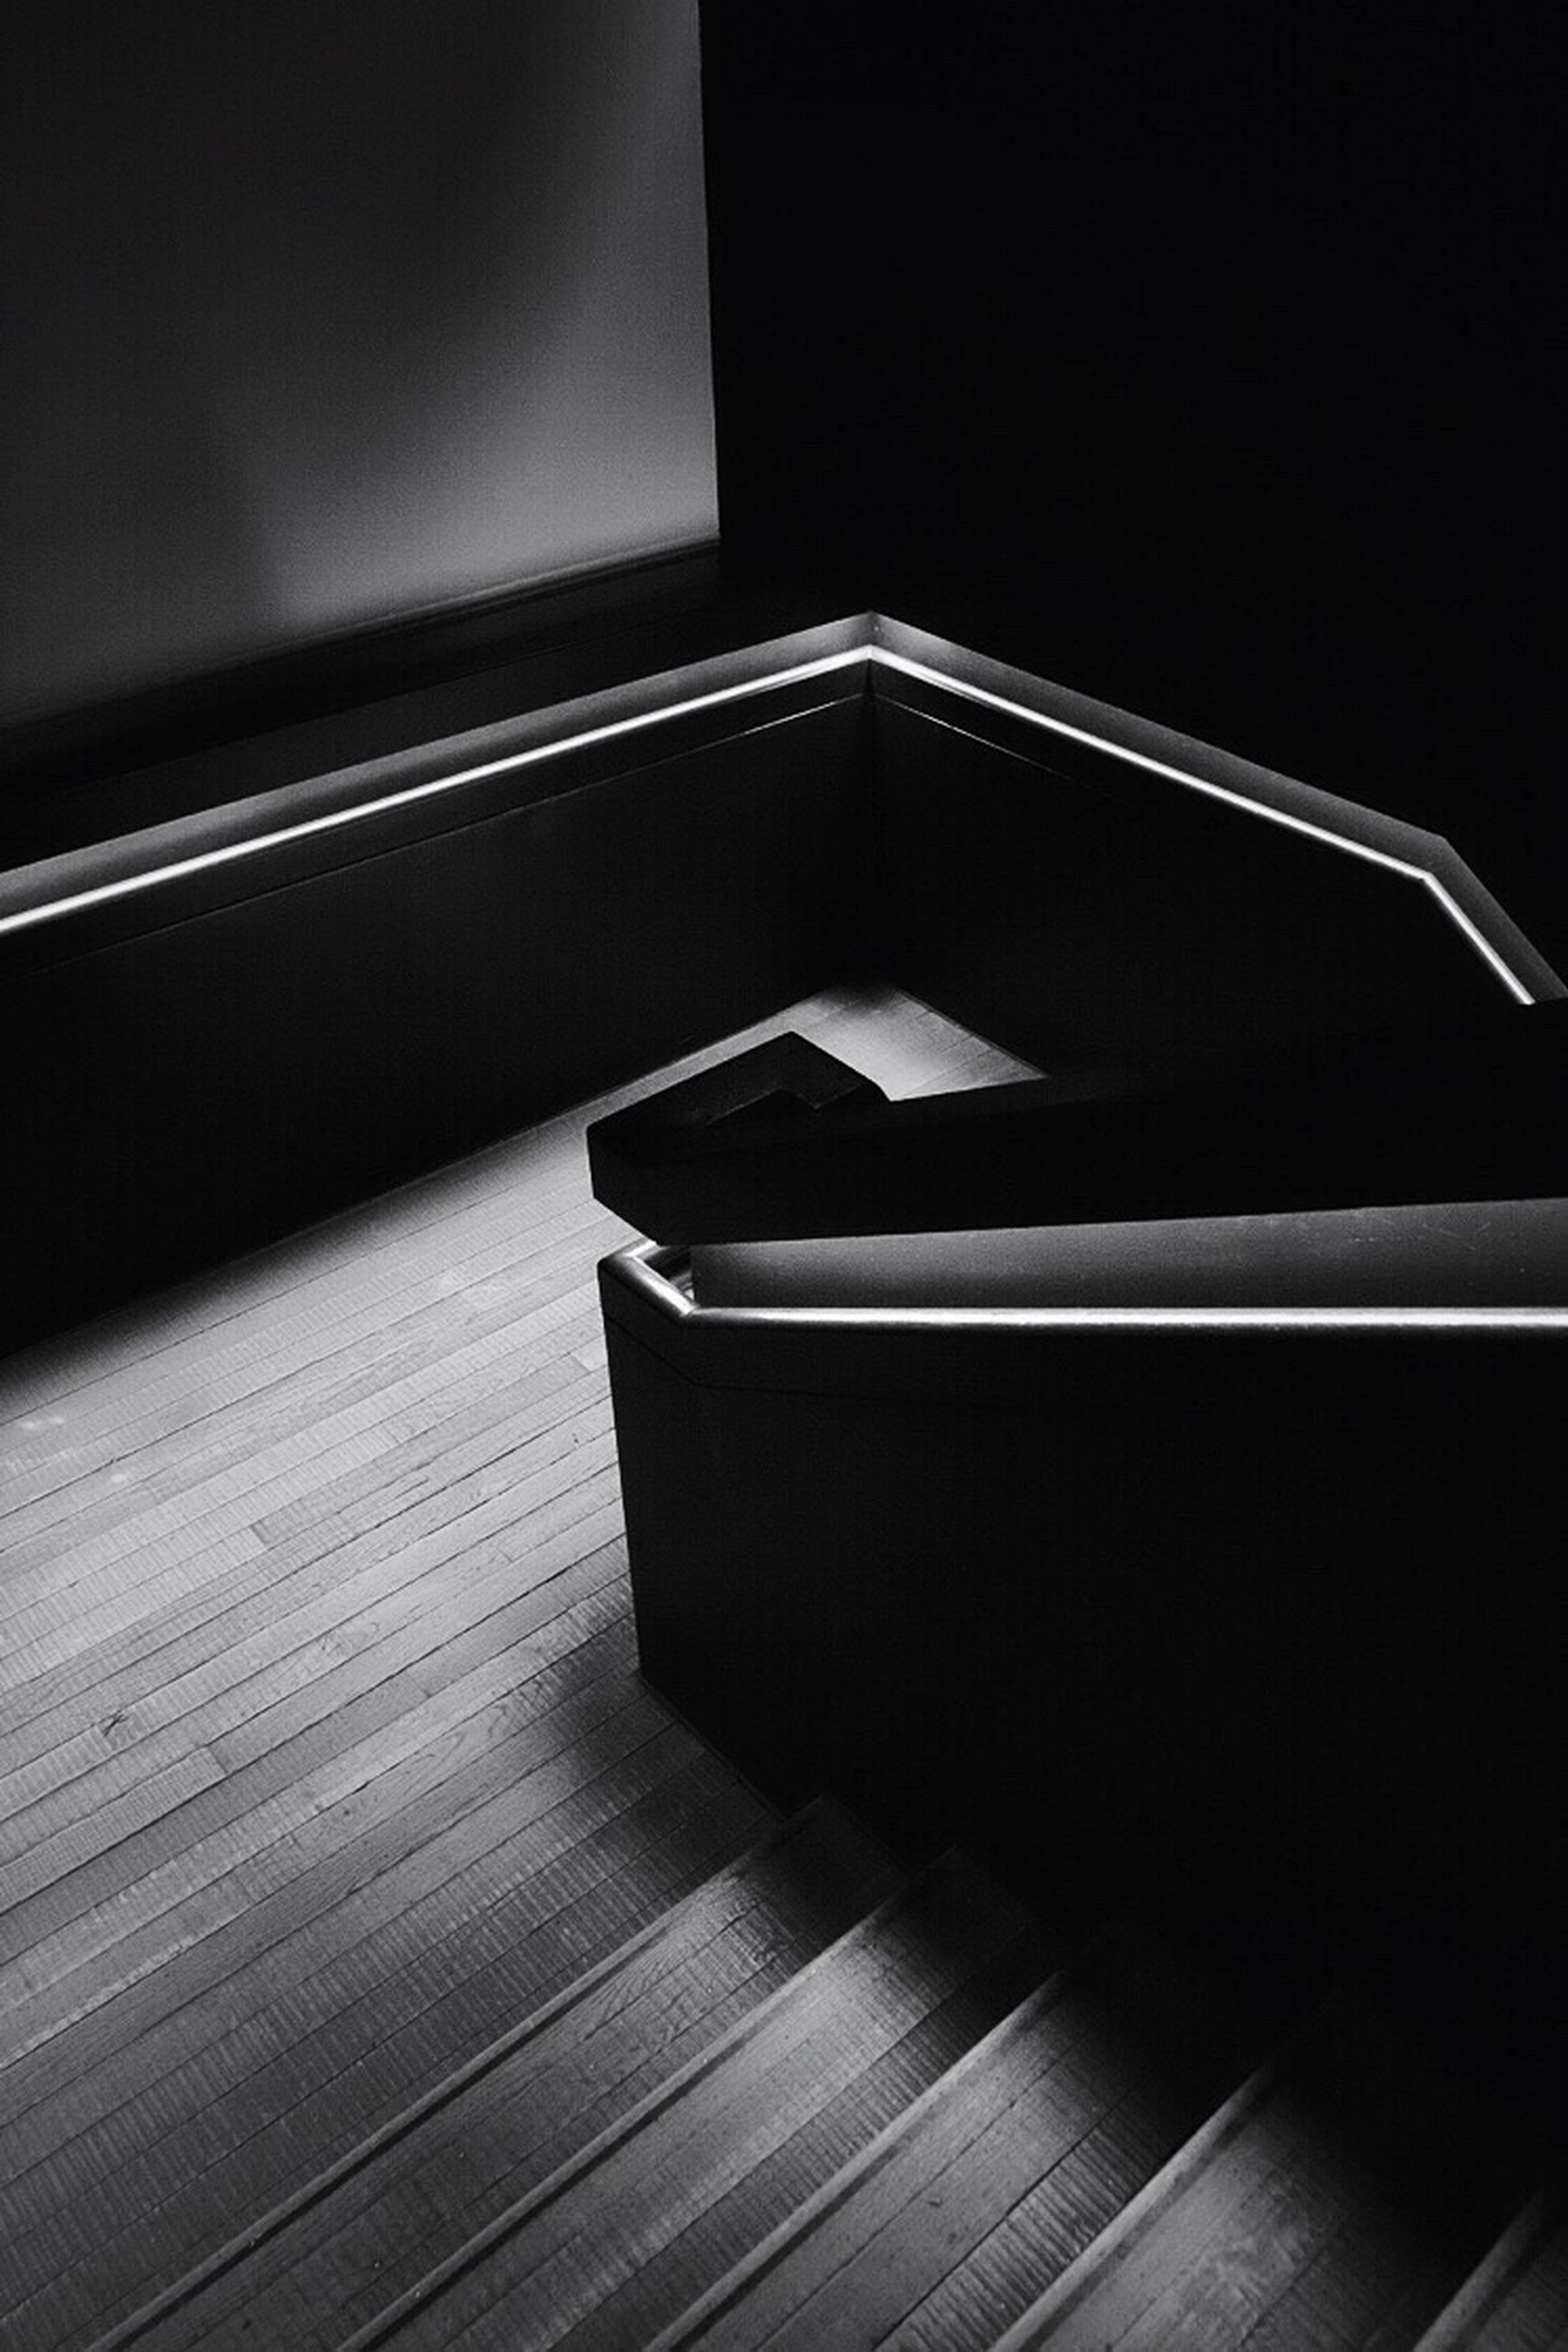 indoors, close-up, absence, empty, no people, high angle view, table, still life, single object, chair, book, copy space, seat, wood - material, dark, part of, selective focus, night, steps, music